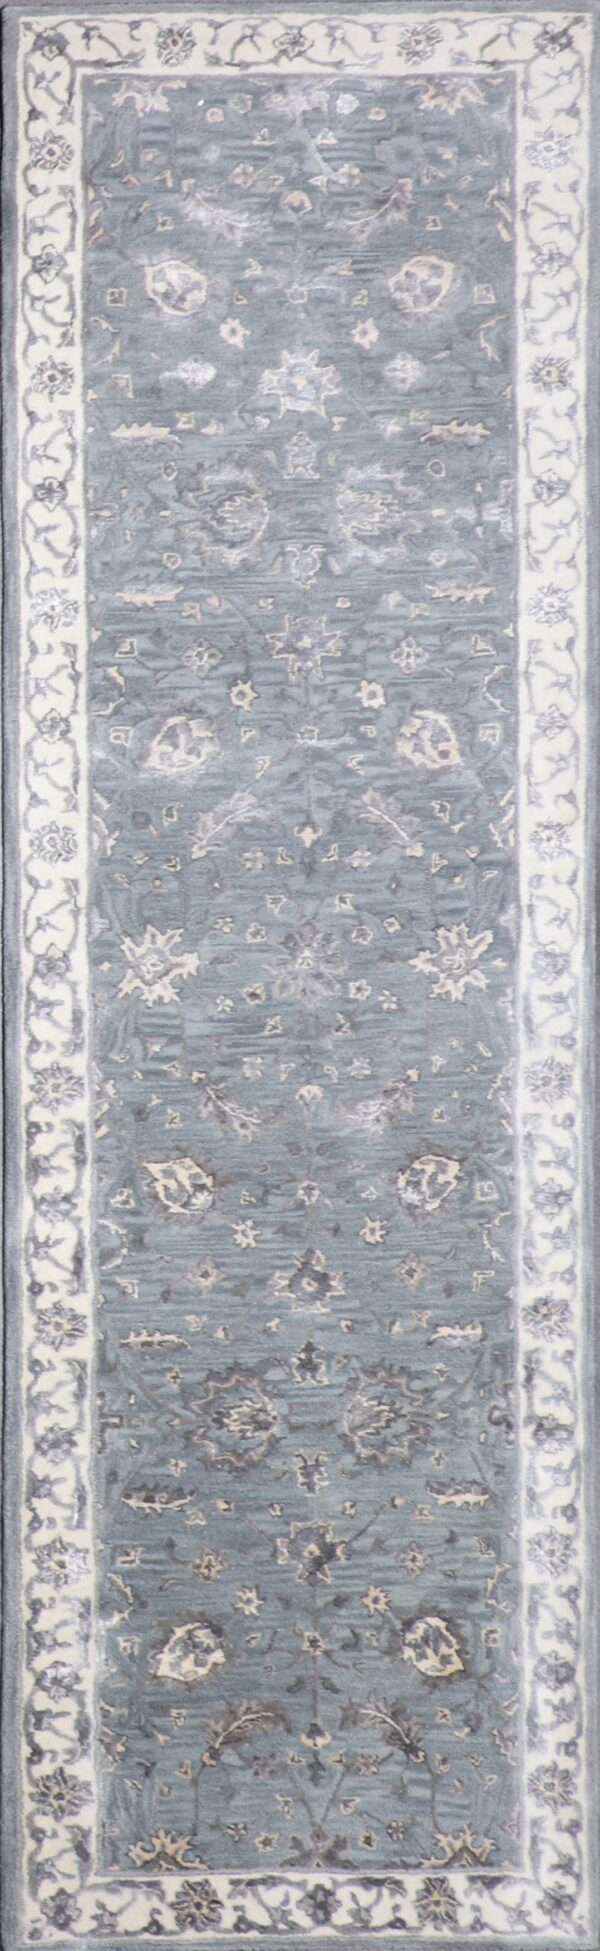 """2'10""""x10' Decorative Vintage Gray Wool & Silk Rug - Direct Rug Import 